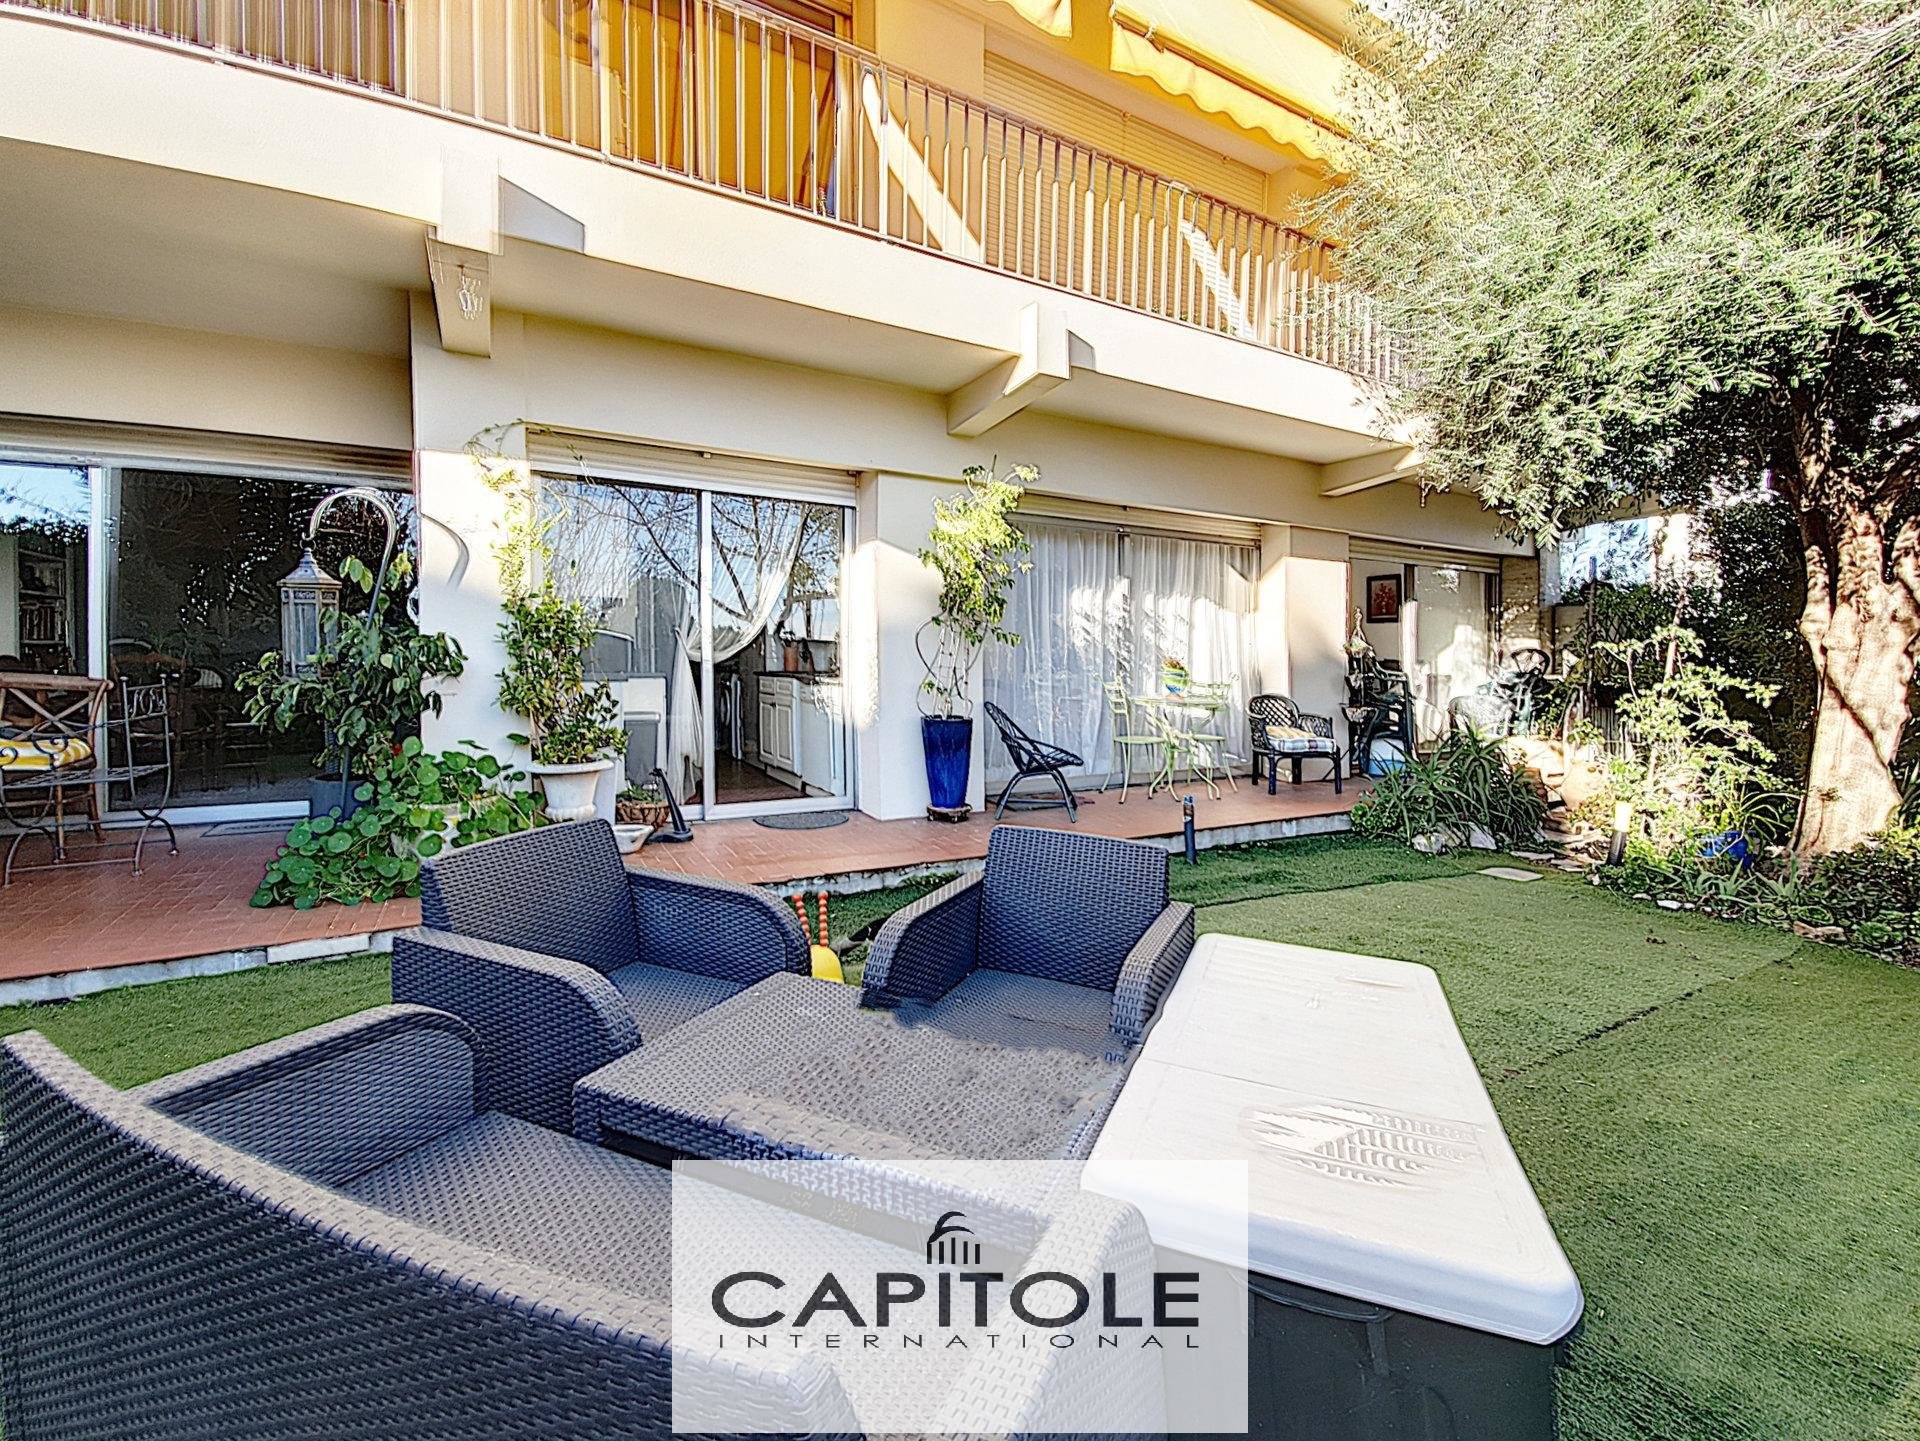 For sale, Antibes near town center, 2 bedroom garden apartment 72m²,  swimming pool